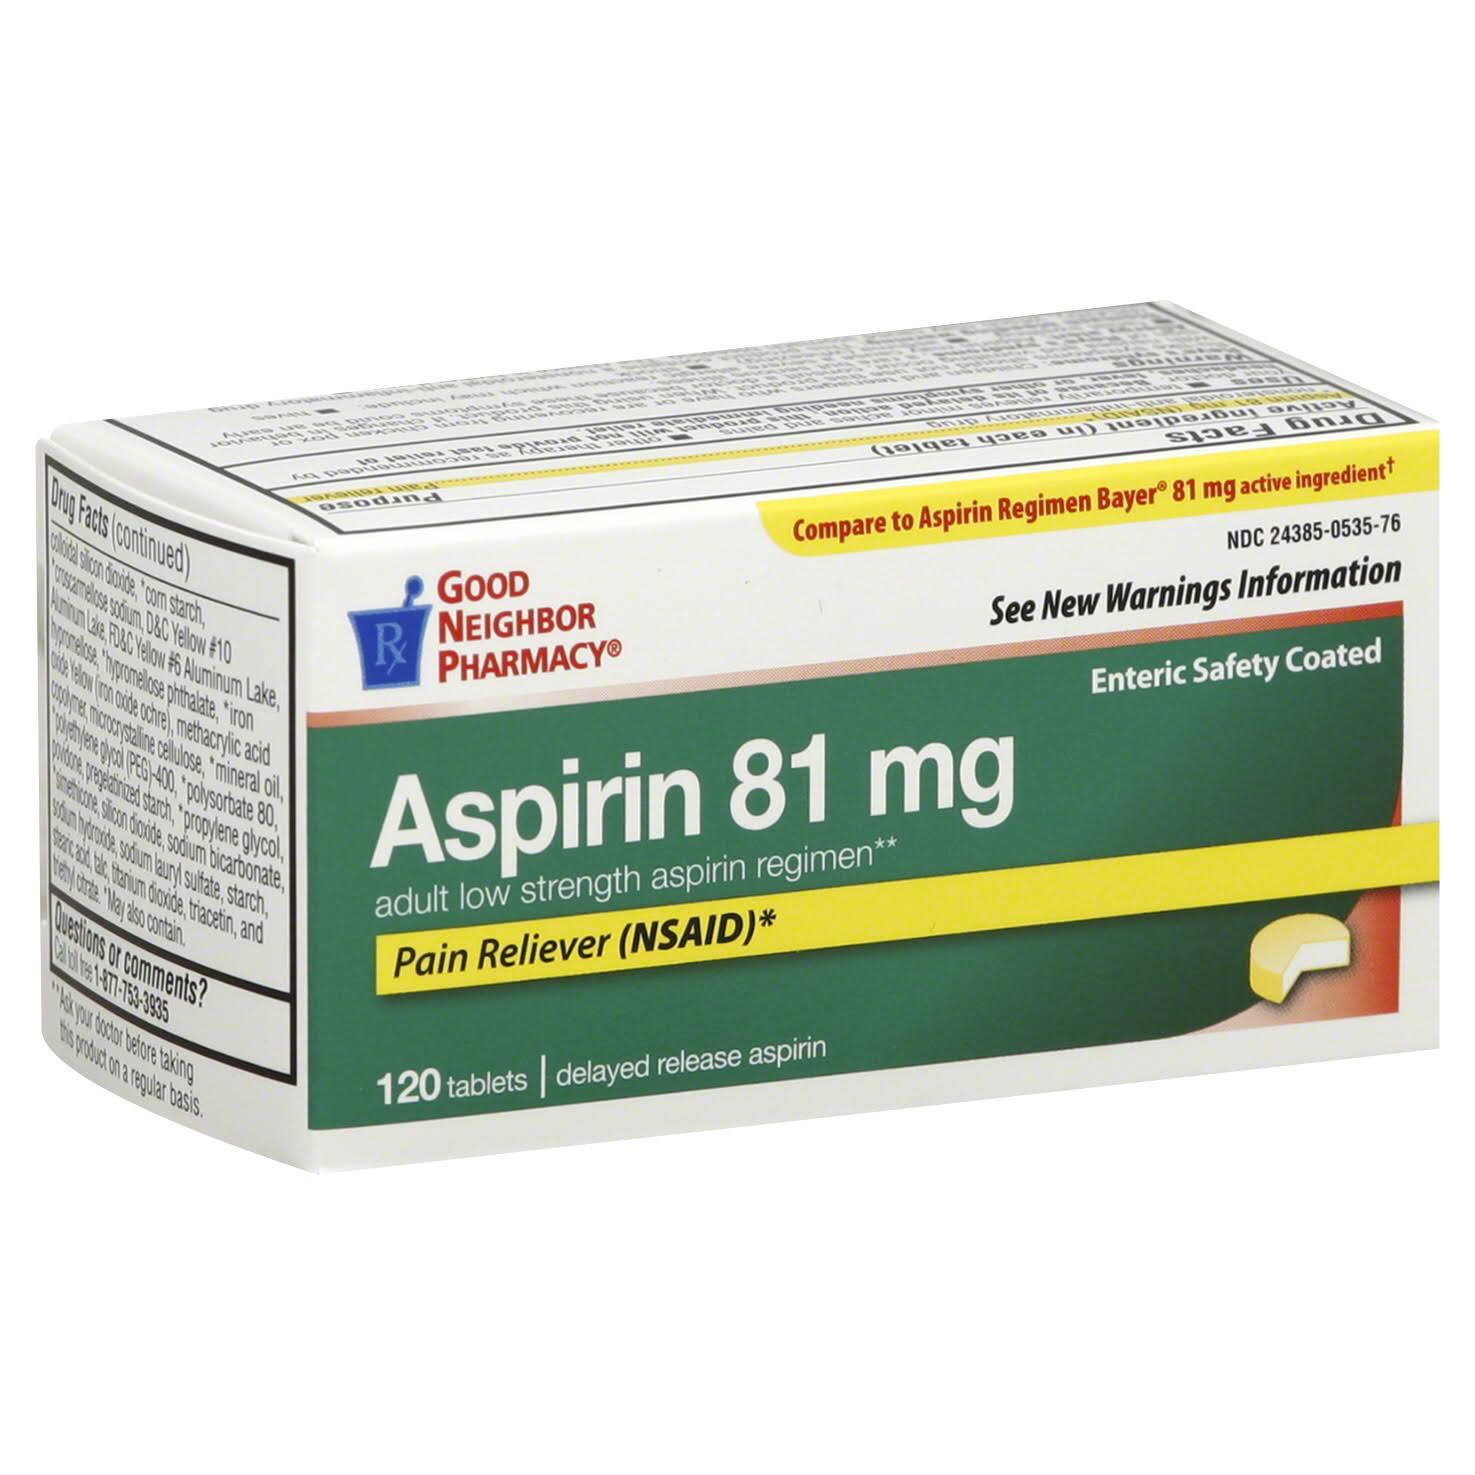 Good Neighbor Pharmacy Aspirin Adult Low Strength Tablets - 81mg